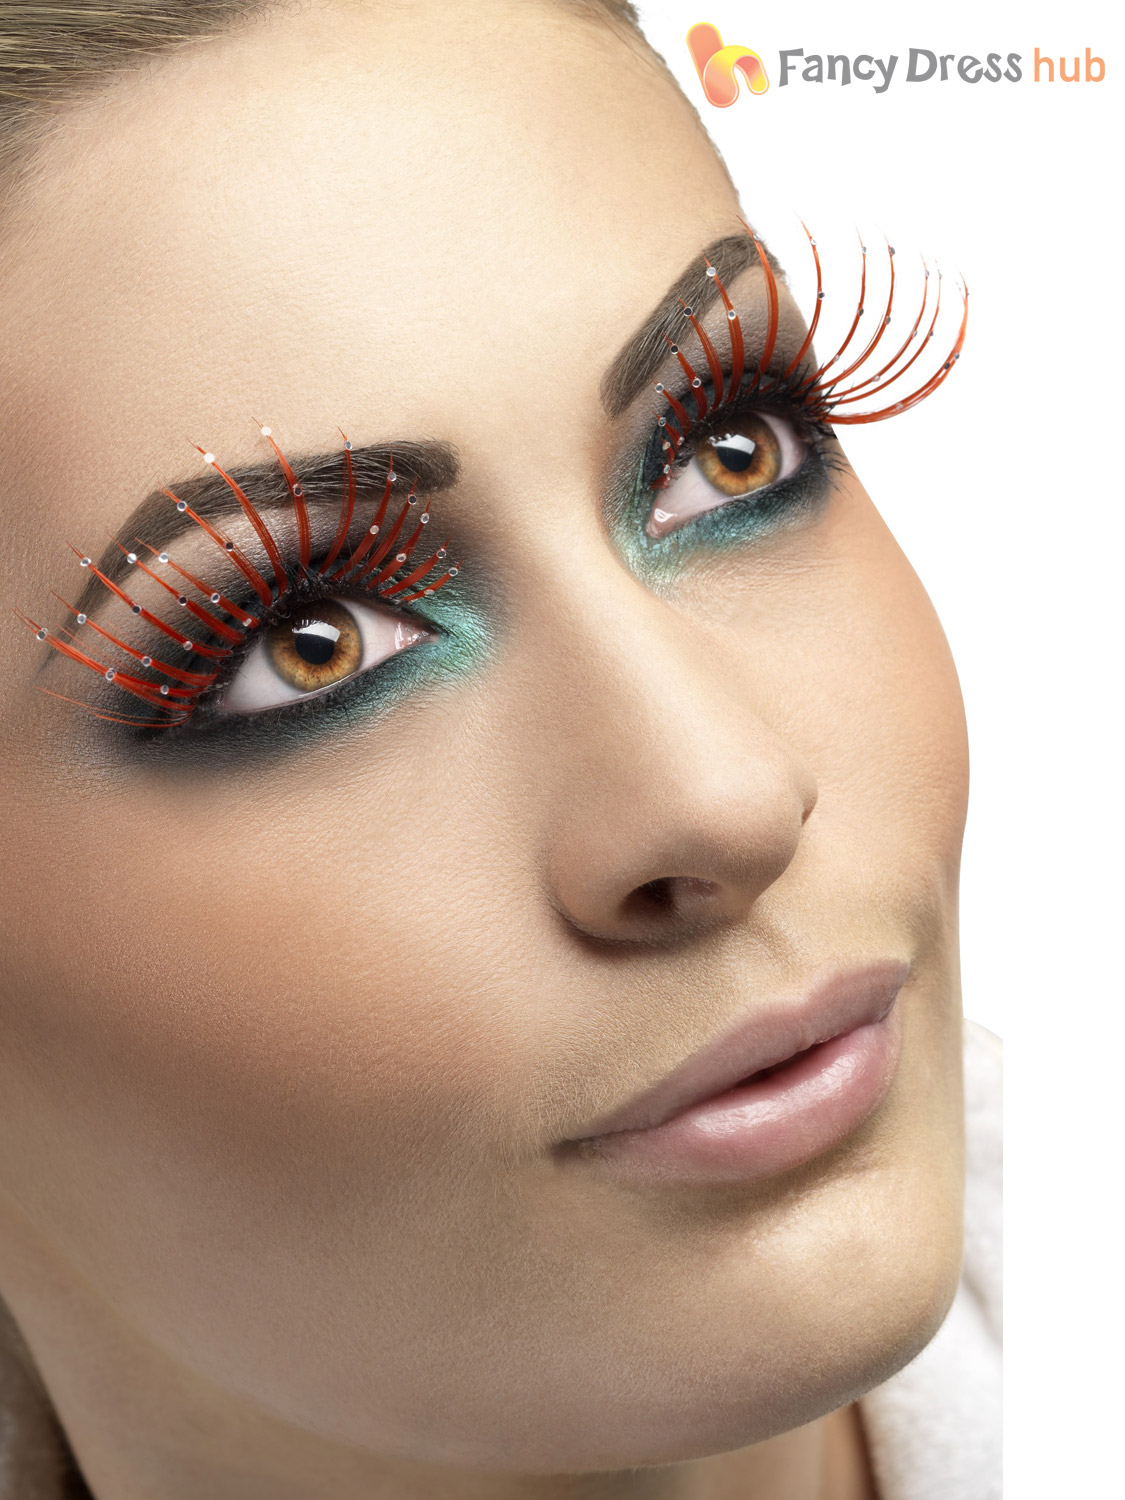 Fever False Fake Eyelashes Lashes Halloween Fancy Dress Costume